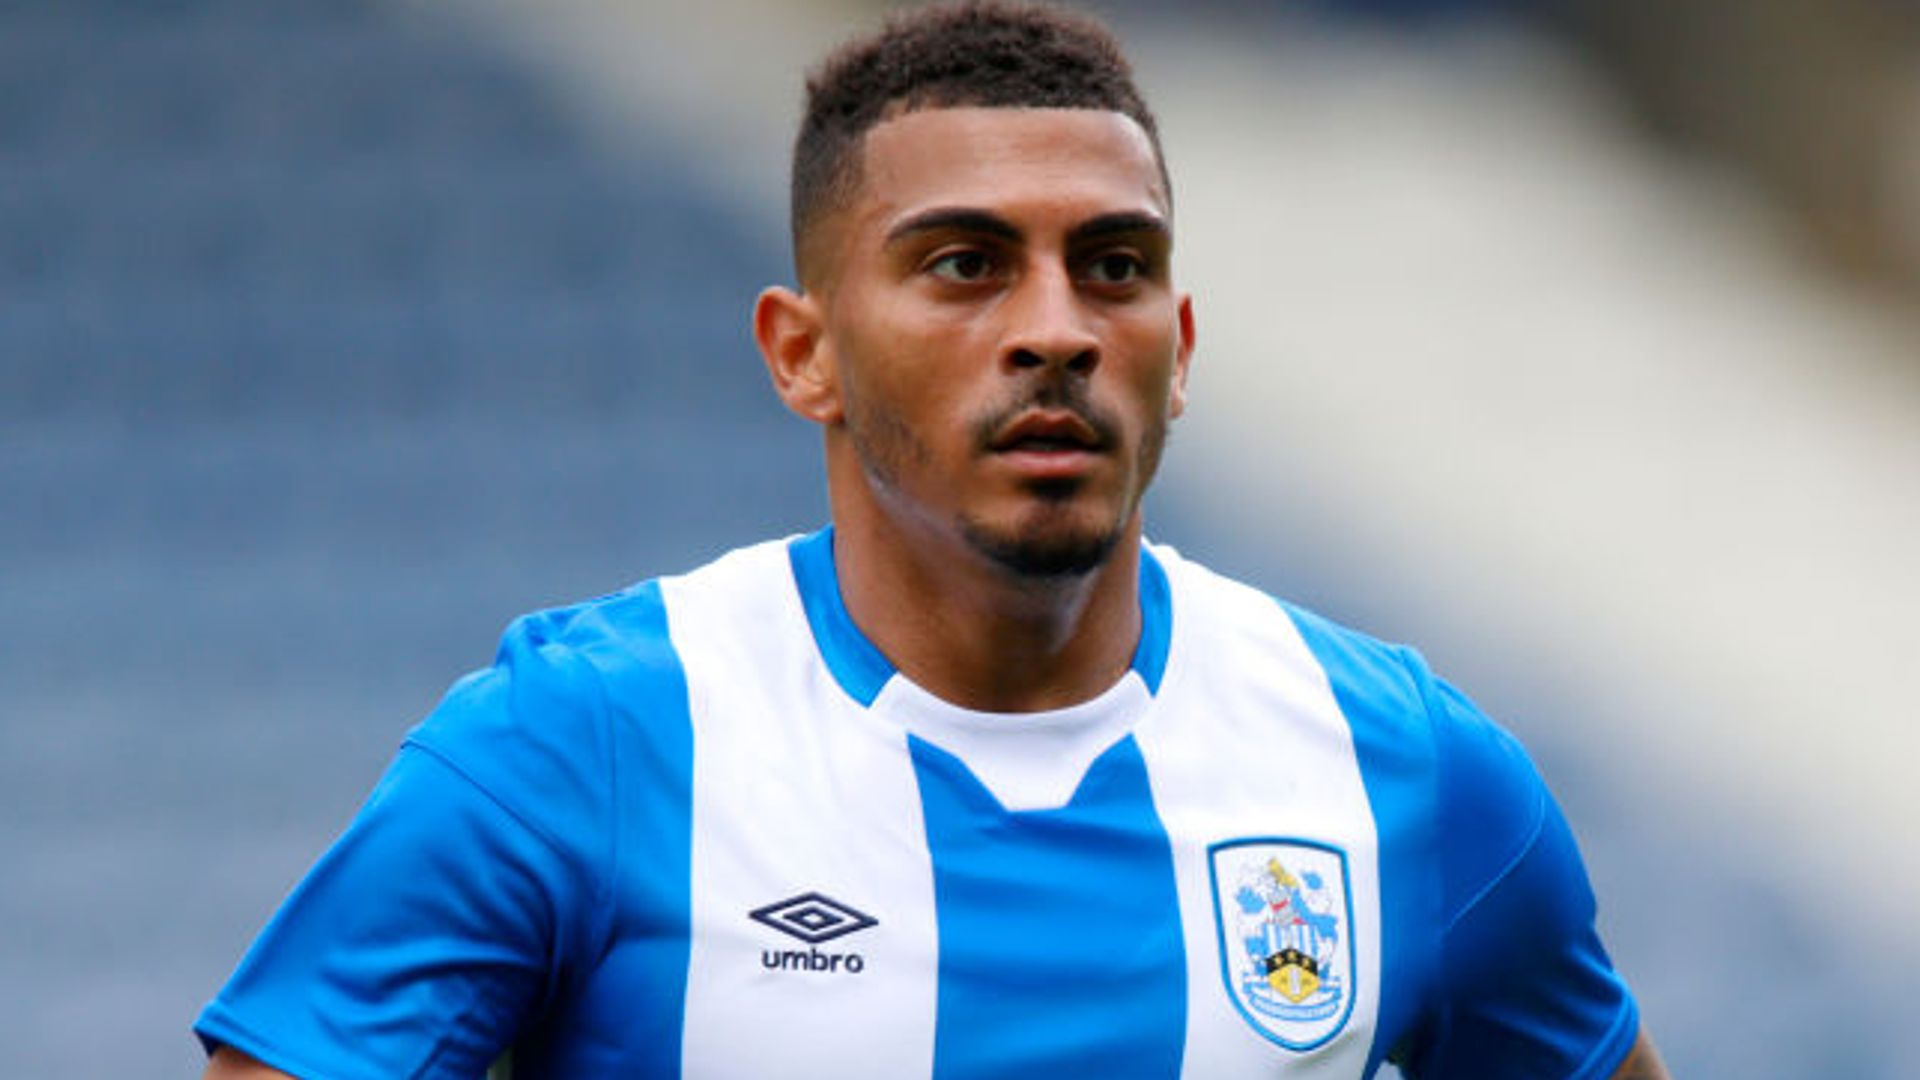 West Brom agree £15m fee for Huddersfield's Grant